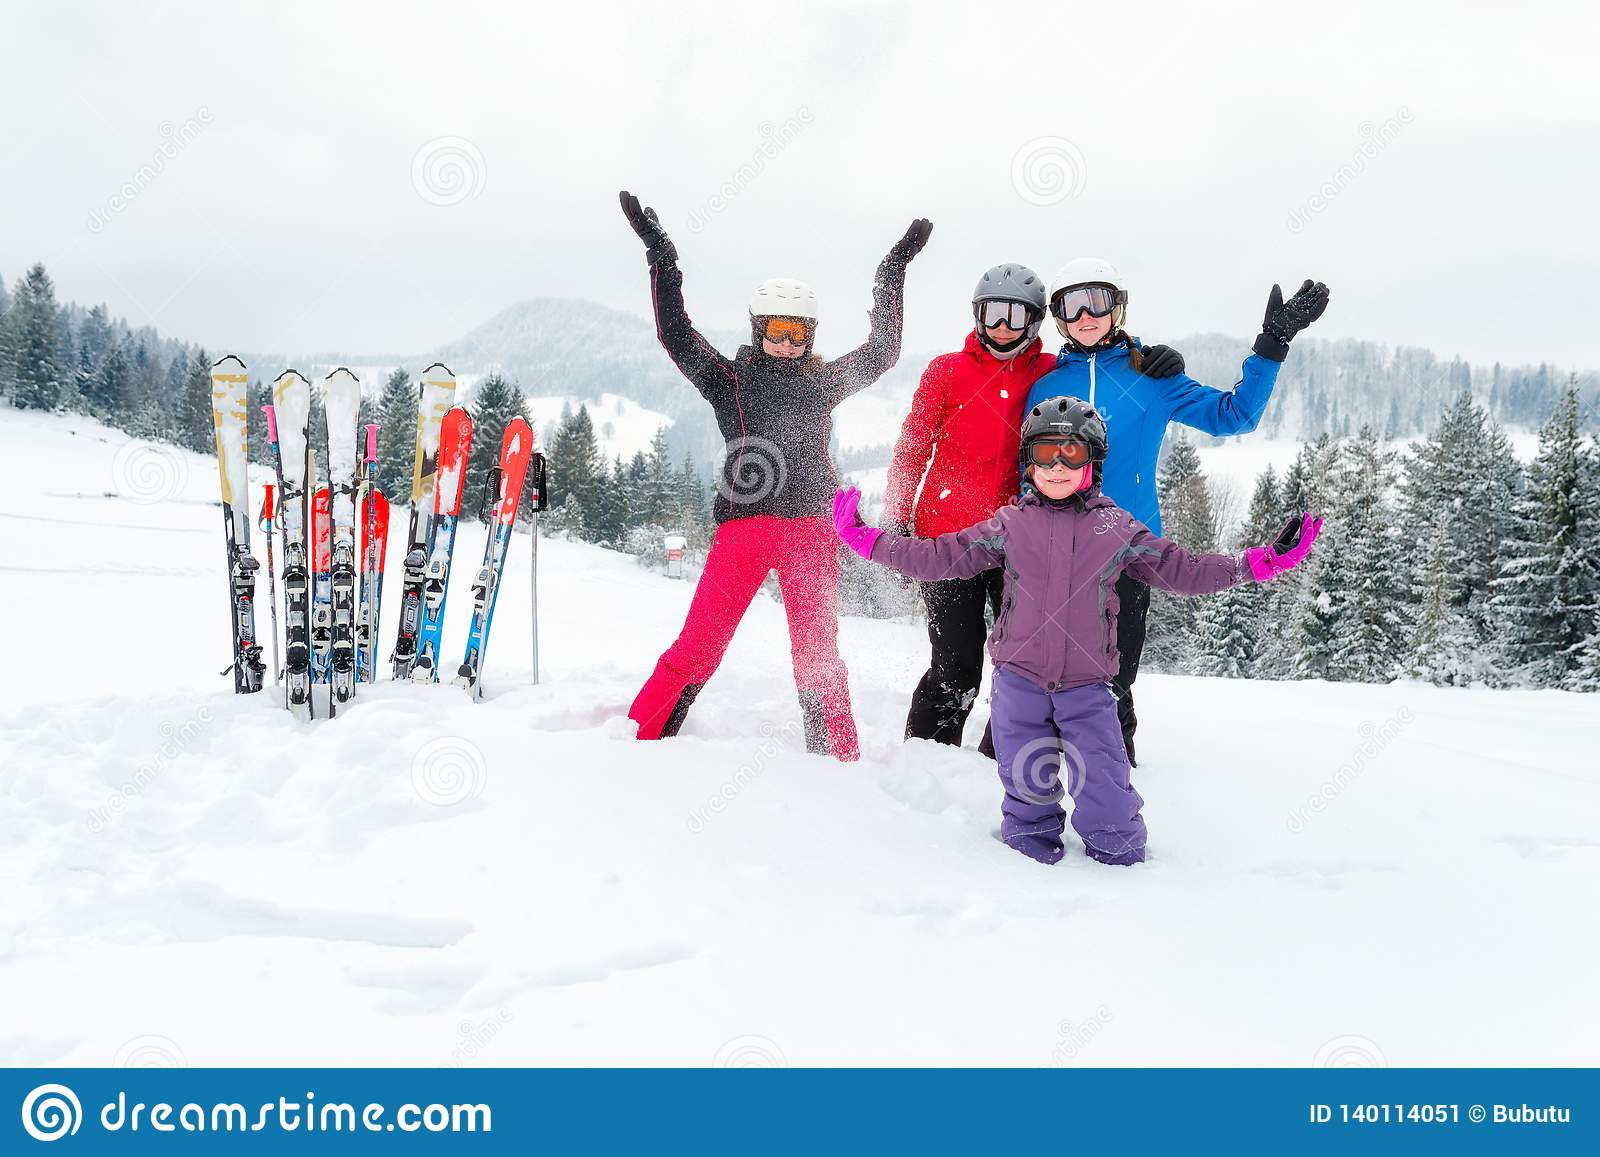 Happy family in winter clothing at ski resort - skiing, winter, snow, fun - mom and daughters enjoying winter vacations